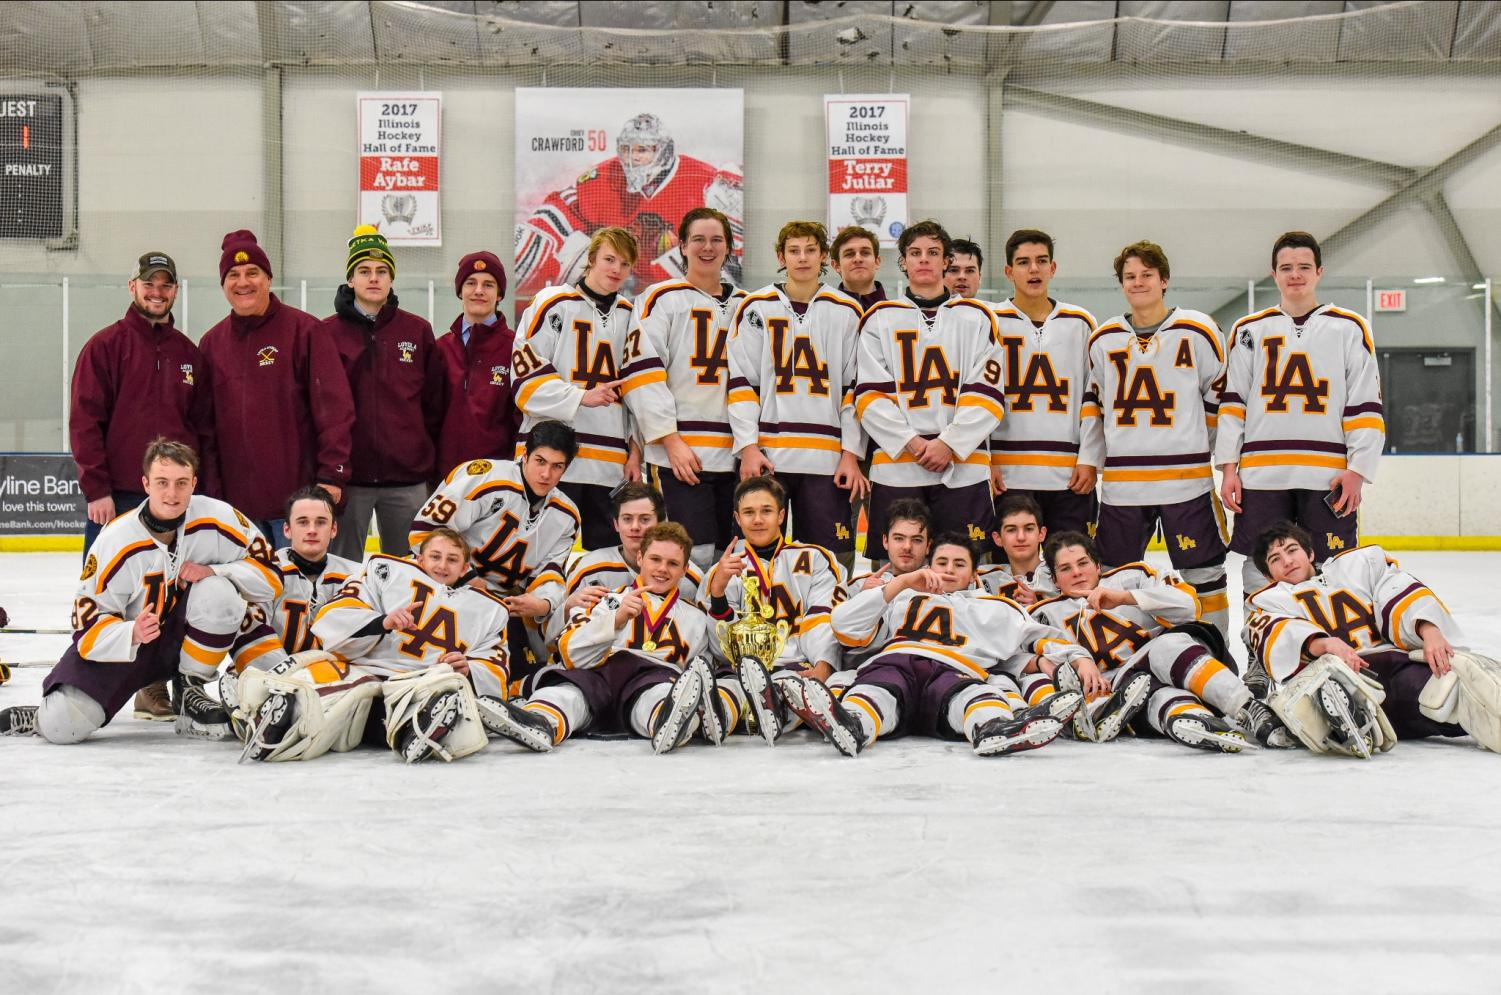 Loyola Academy Maroon defeated Carl Sandburg 4-1 to capture the 2018 O'Grady Cup